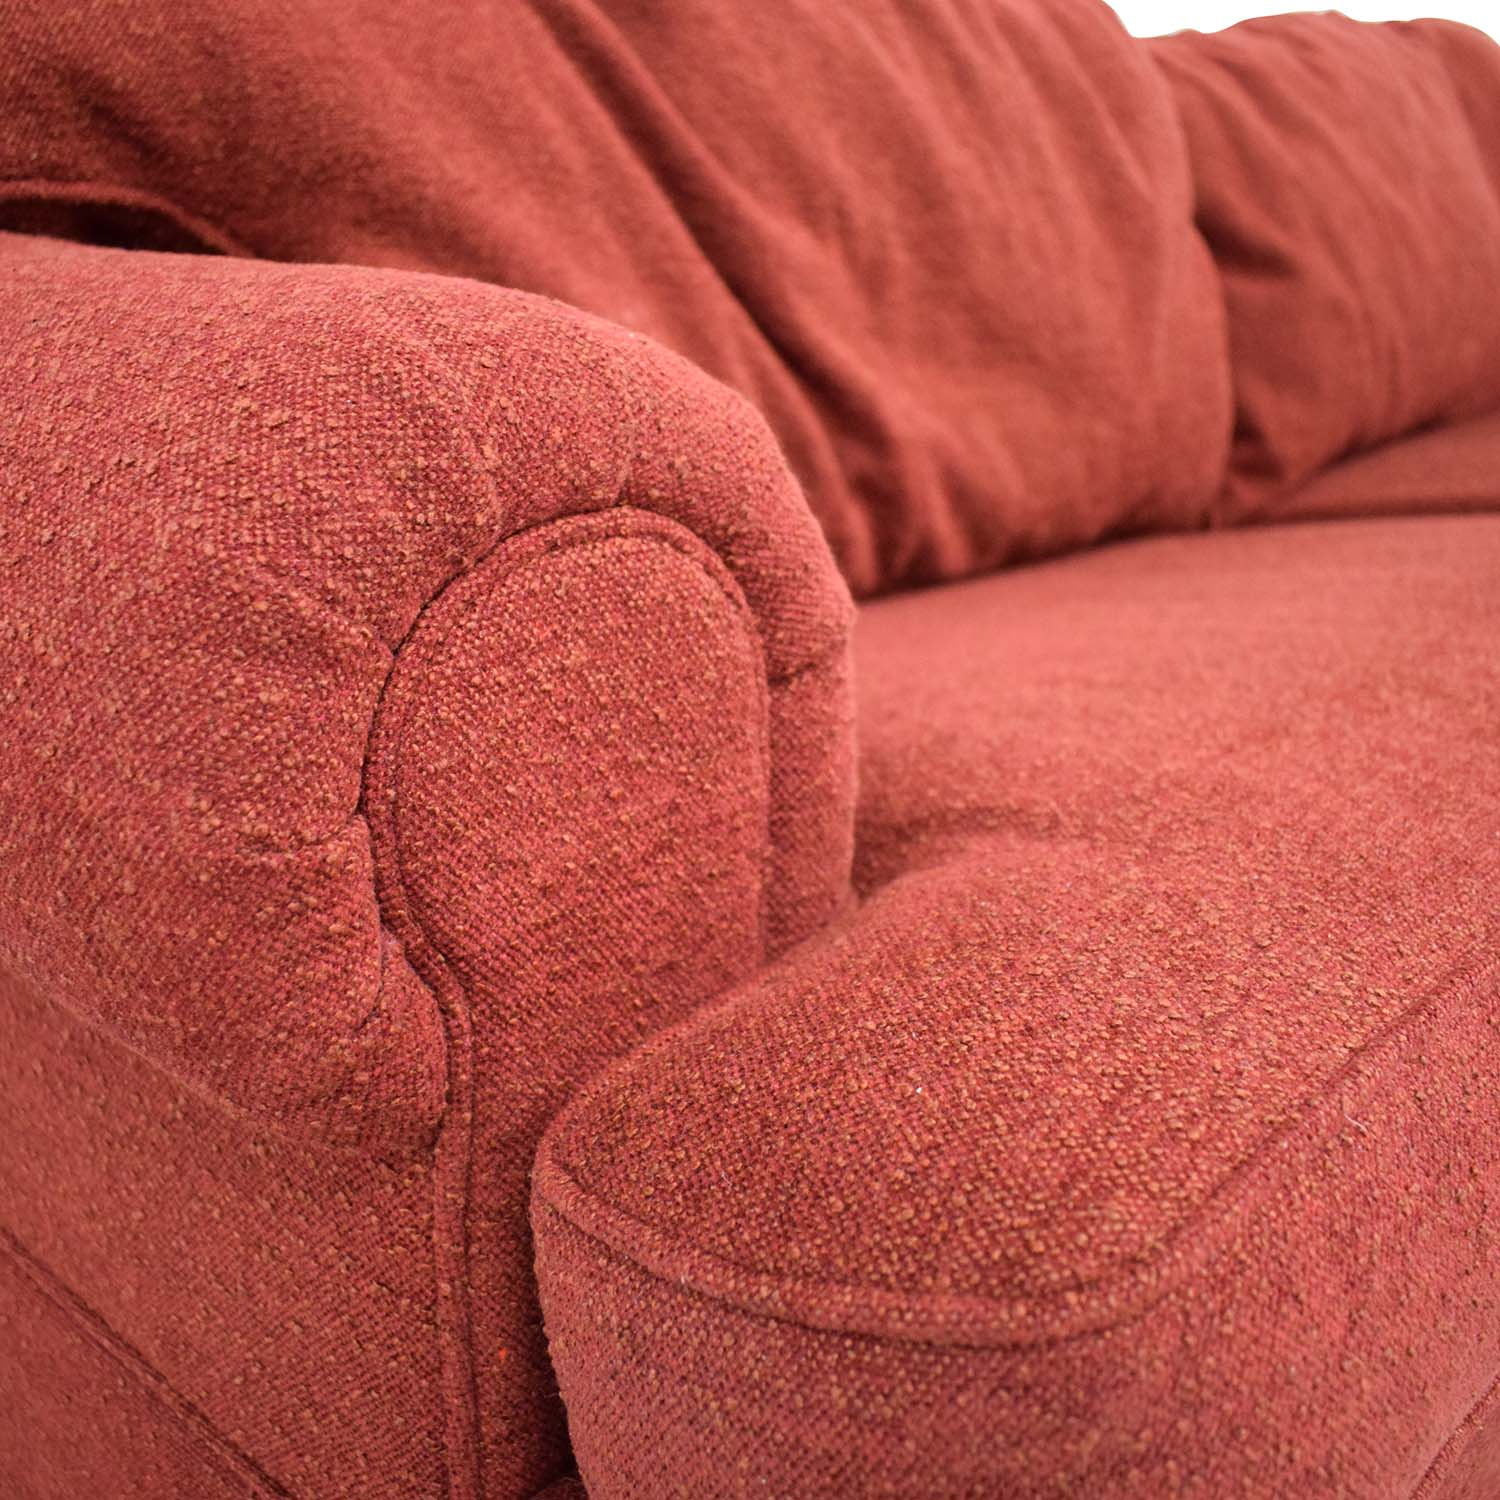 buy Baker Furniture Baker Furniture Milling Road Red Queen Pull Out Sofa online